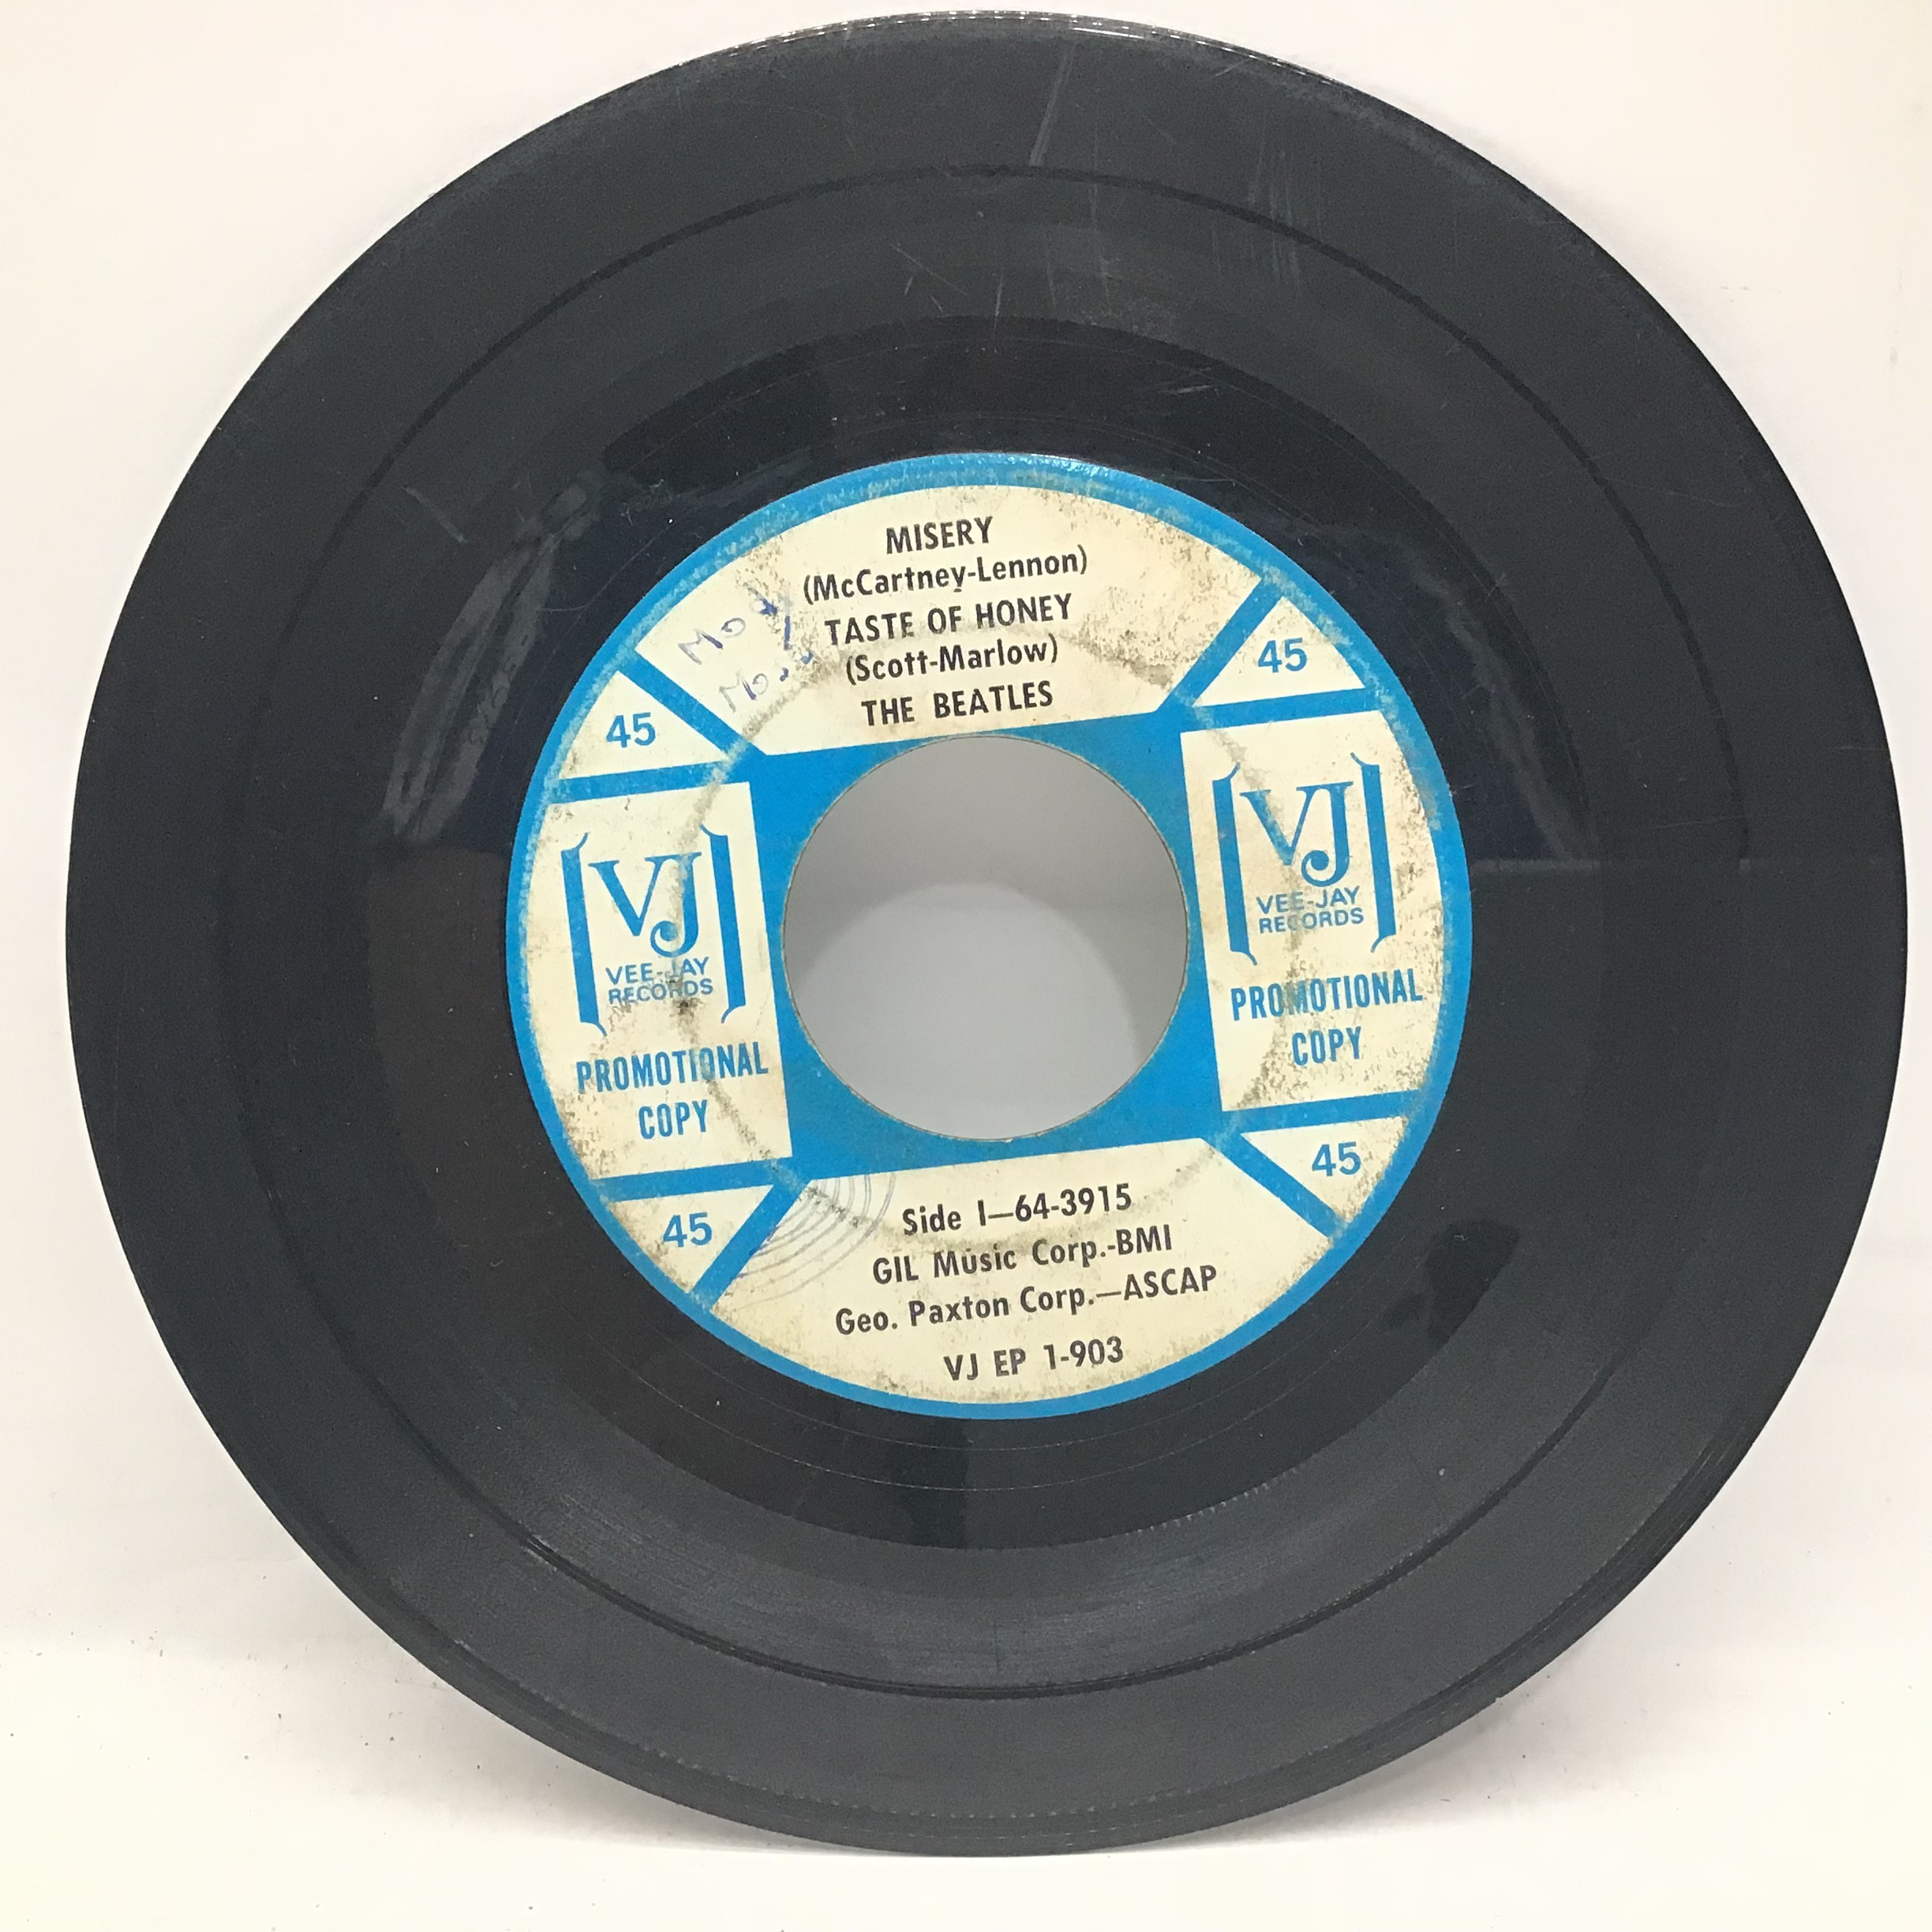 """THE BEATLES ON VEE JAY 7? PROMO. ?Souvenir of Their Visit to America"""" 1964 release containing the - Image 3 of 4"""